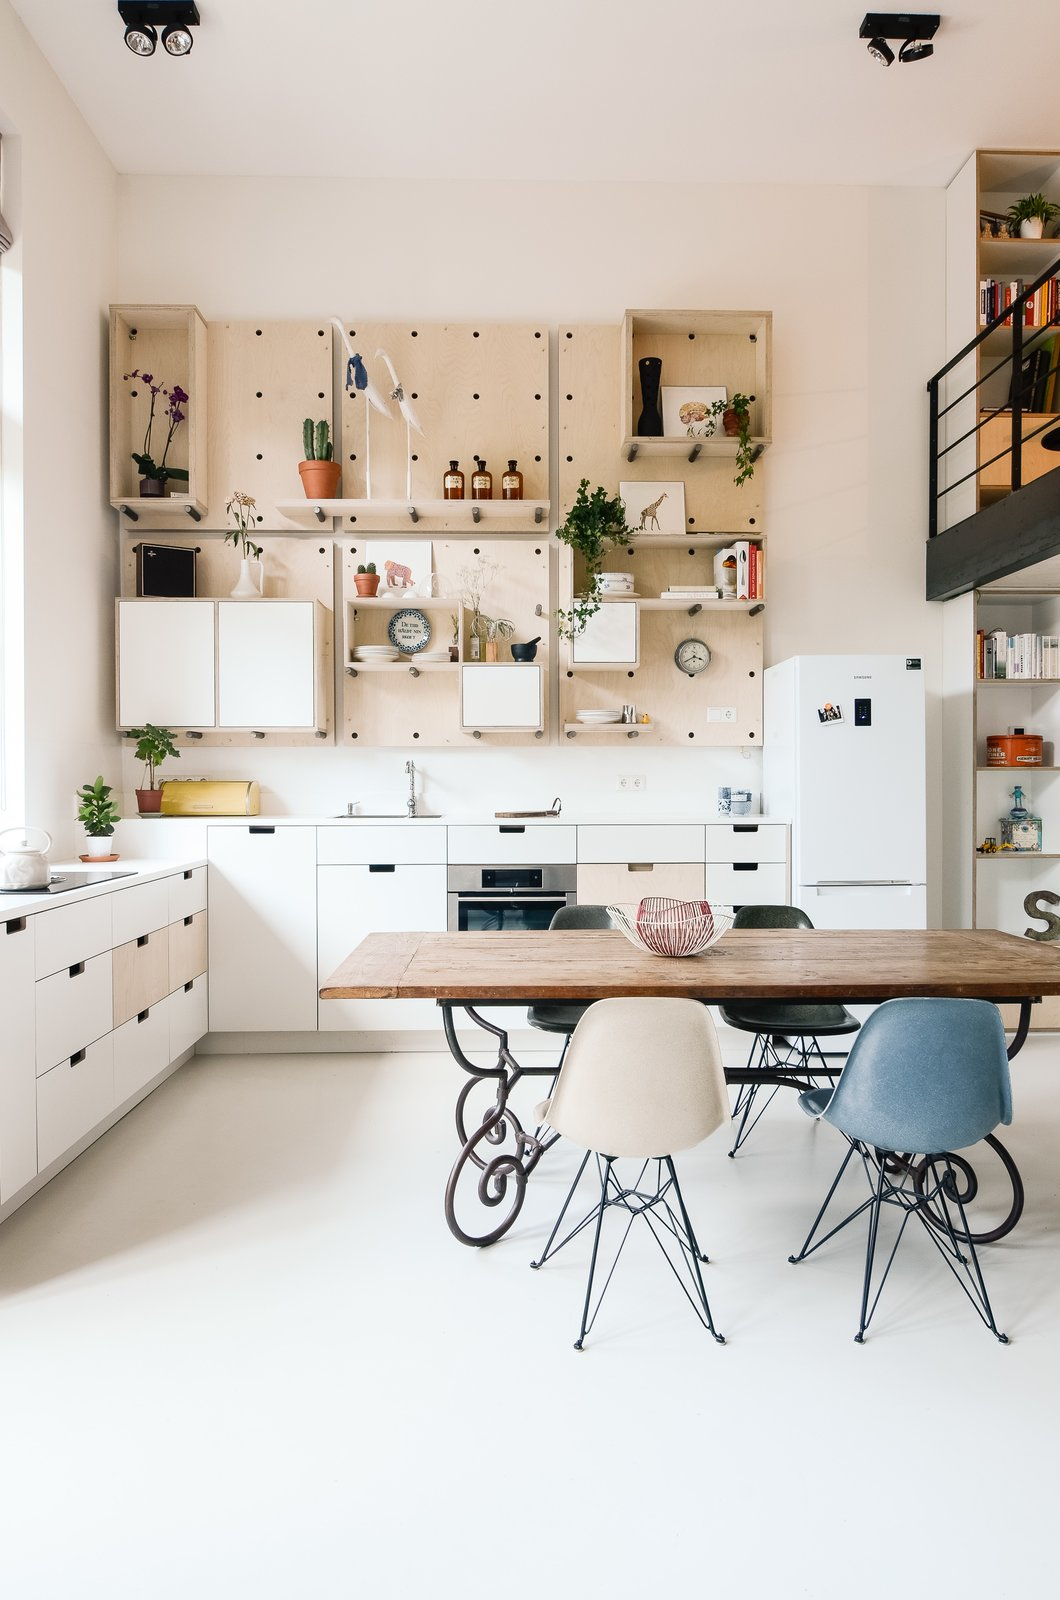 Photo 6 of 20 in 20 Modern Home Eat-in Kitchens - Dwell